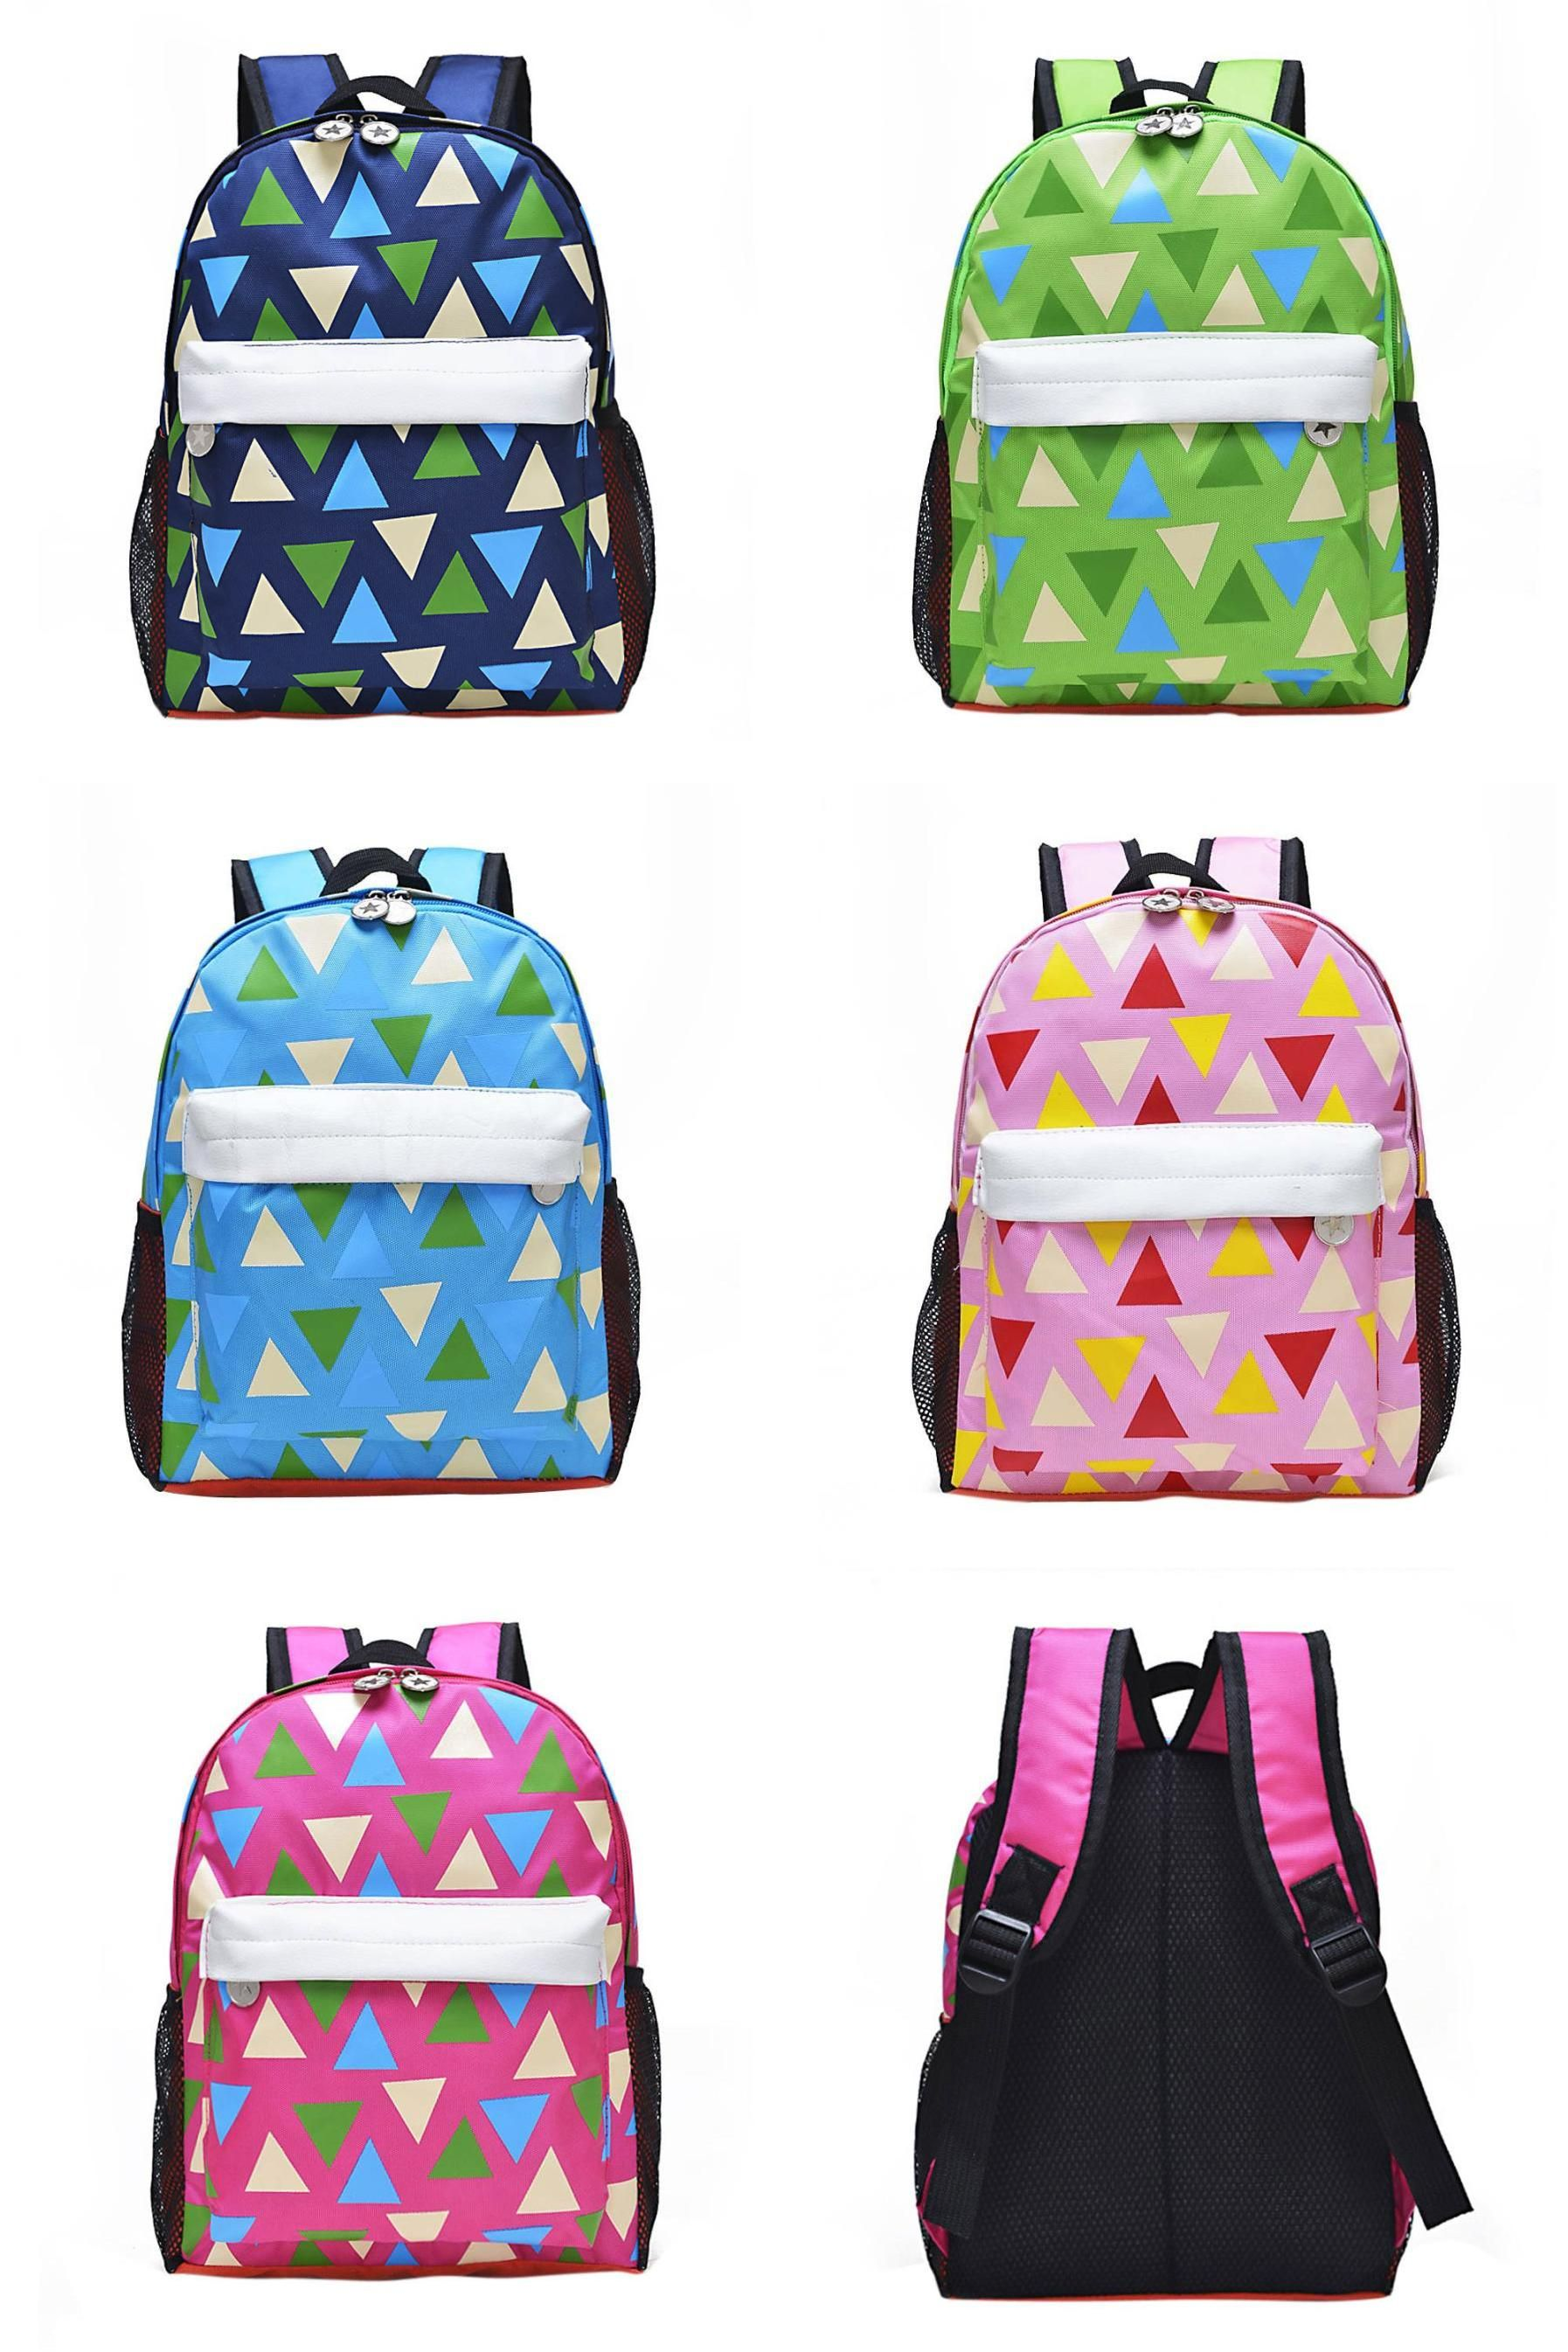 visit to 2017 sports bags for teenagers boys girls high